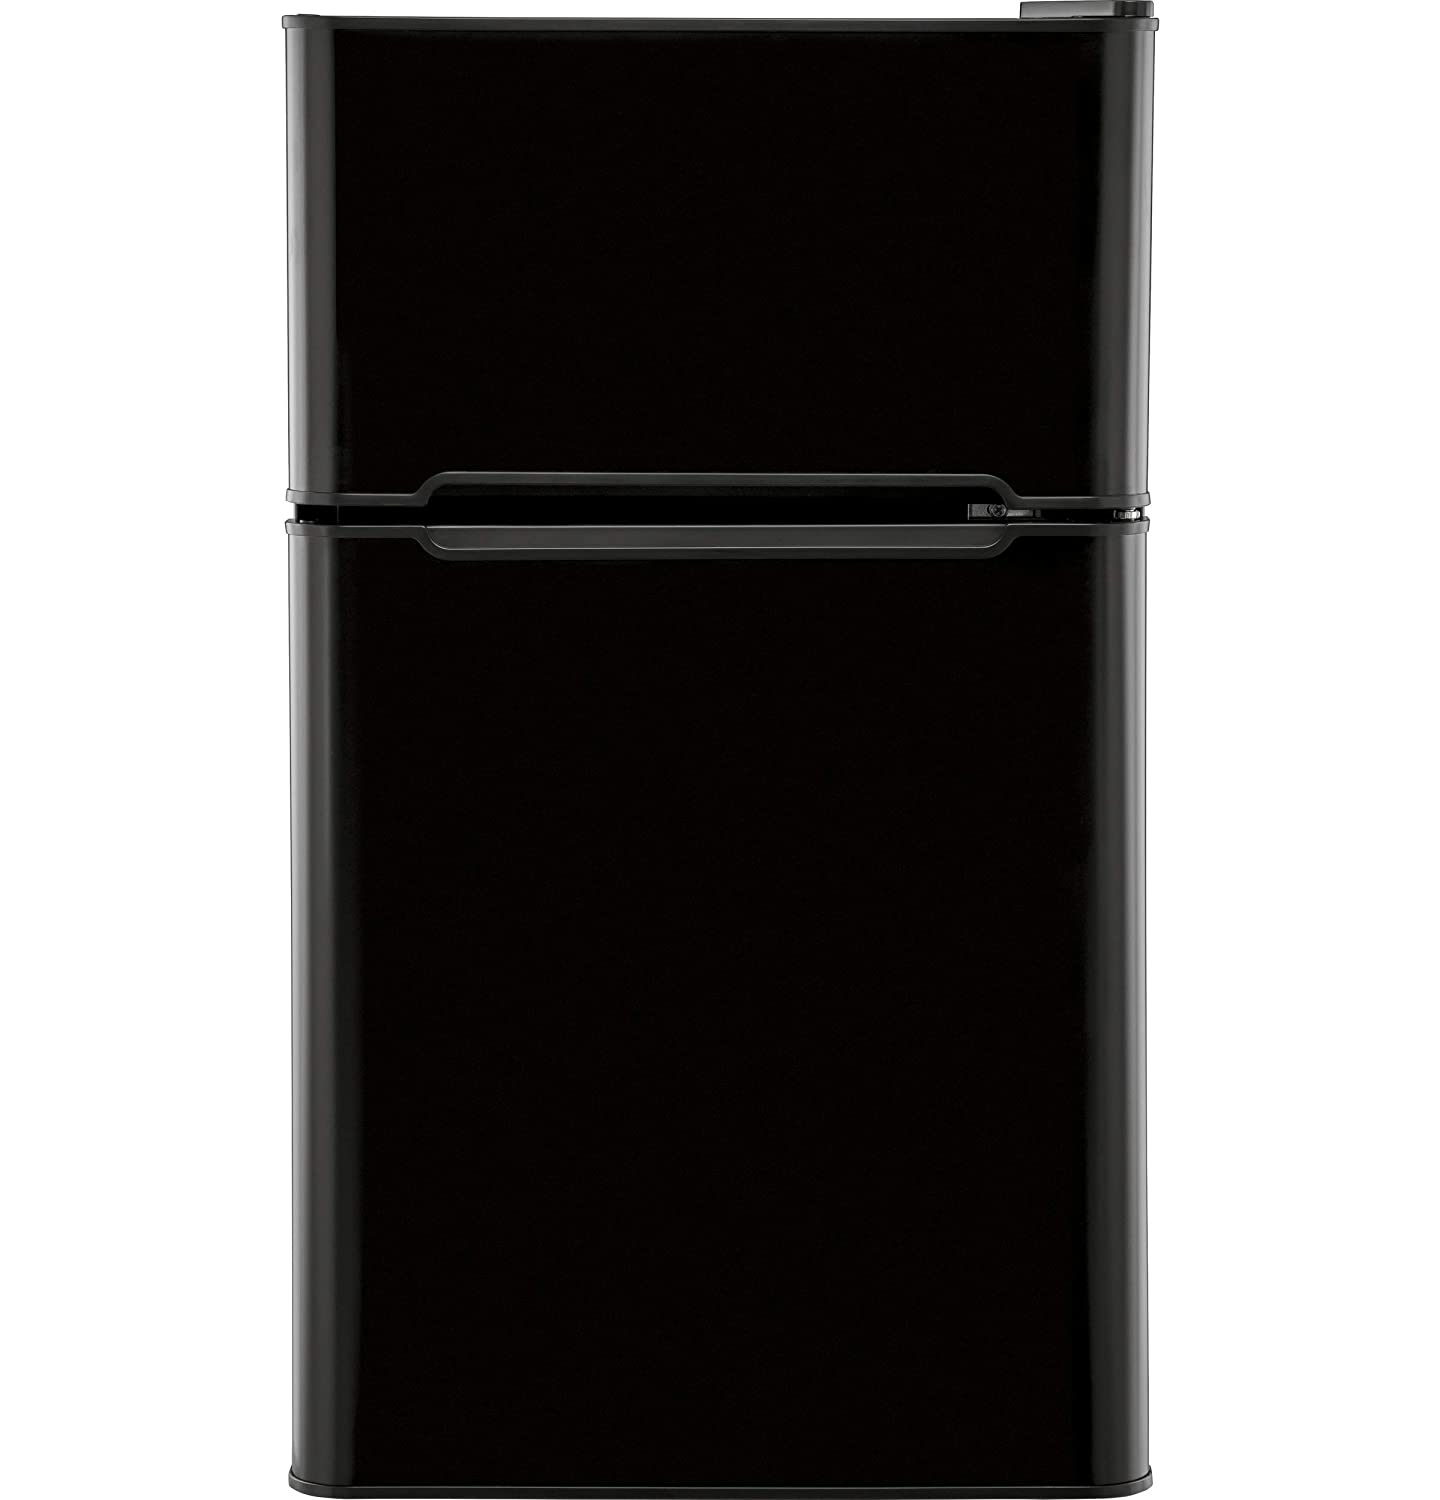 GE HC32TW10SB 3.2 Cu. Ft. Compact Refrigerator with Full-Width Glass Shelves, a True Separate Freezer, Dispense-a-Can Storage, and Interior Lighting, in Black